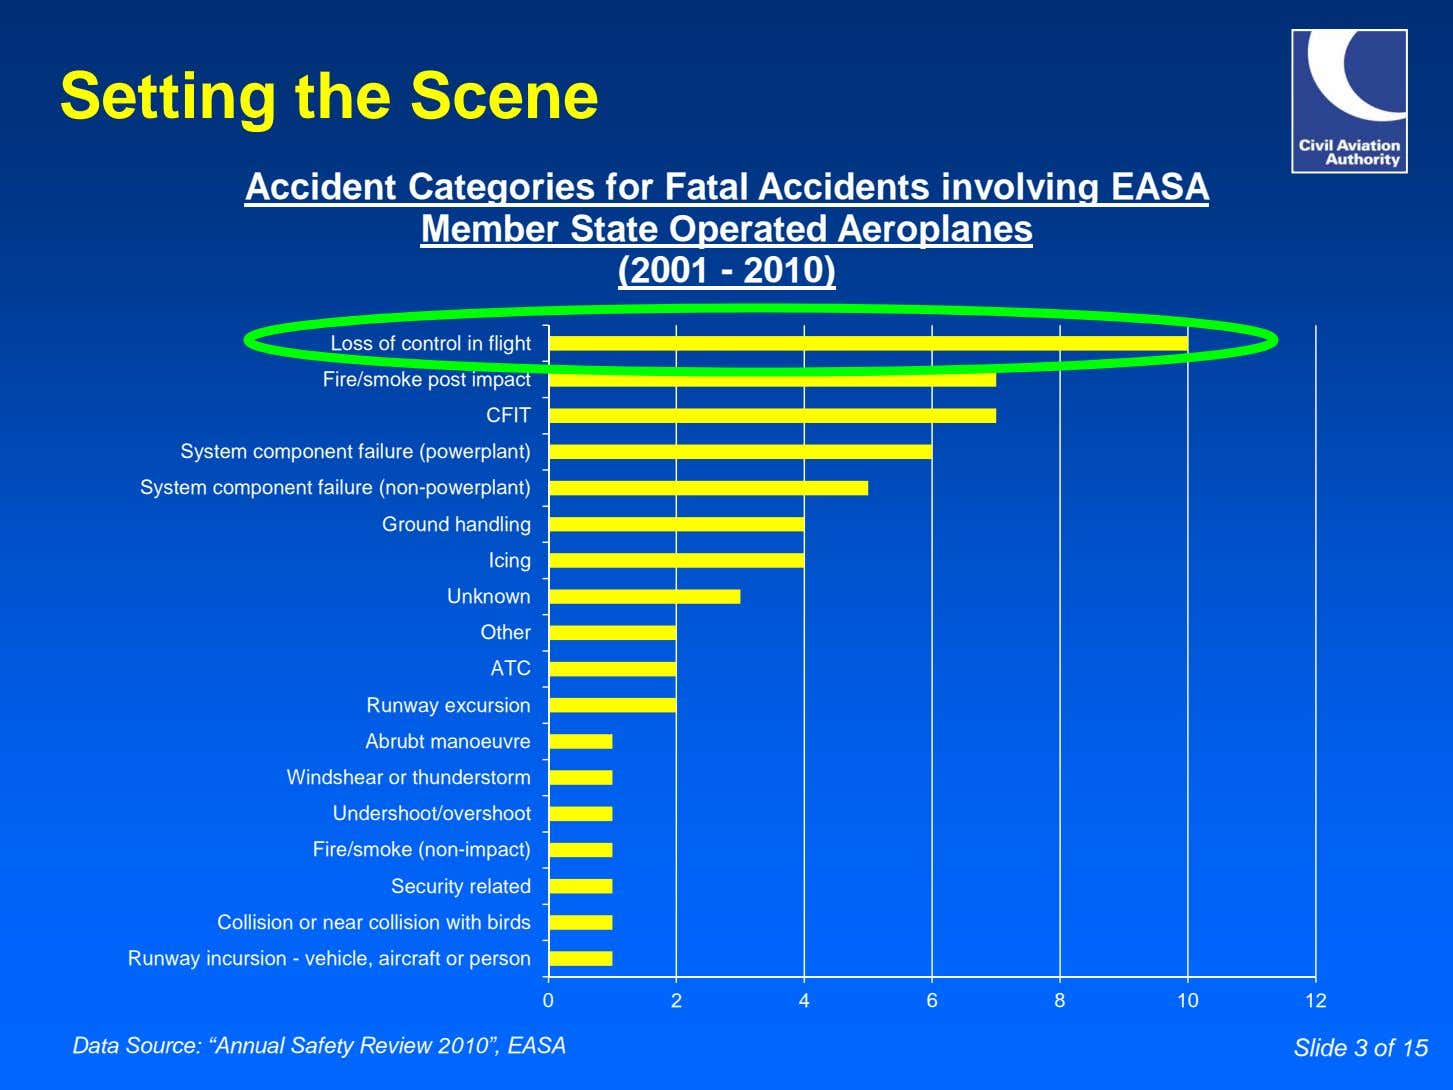 Setting the Scene Accident Categories for Fatal Accidents involving EASA Member State Operated Aeroplanes (2001